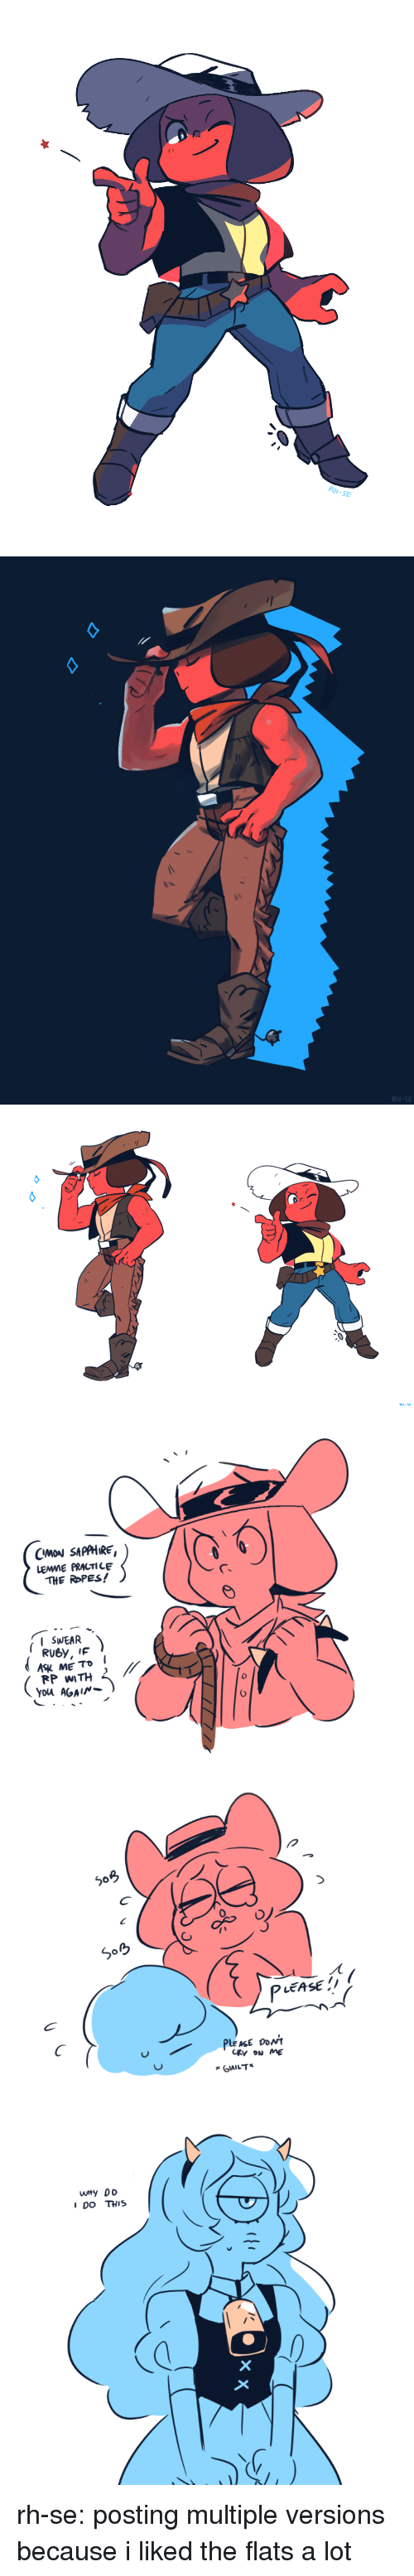 flats: RH-SE   RH-SE   CMON SAPPHIRE  LEMME PRACTI LE  THE ROPES!  ISWEAR  RP WITH  LEASE  IDO THIS rh-se:  posting multiple versions because i liked the flats a lot